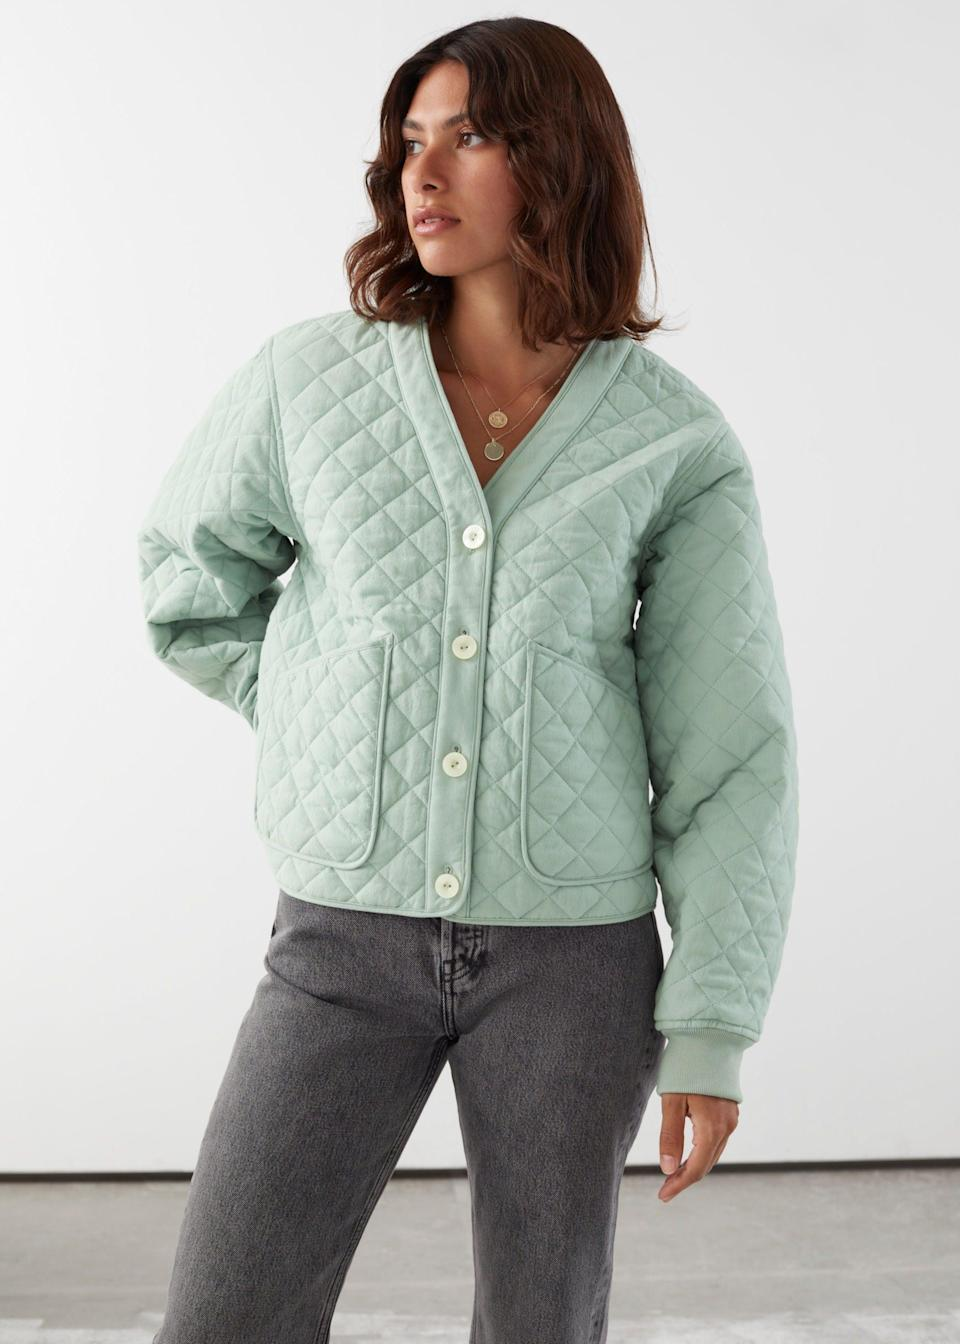 """<br><br><strong>& Other Stories</strong> Boxy Quilted Jacket, $, available at <a href=""""https://www.stories.com/en_gbp/clothing/jackets-coats/jackets/product.boxy-quilted-jacket-turquoise.0883653003.html"""" rel=""""nofollow noopener"""" target=""""_blank"""" data-ylk=""""slk:& Other Stories"""" class=""""link rapid-noclick-resp"""">& Other Stories</a>"""